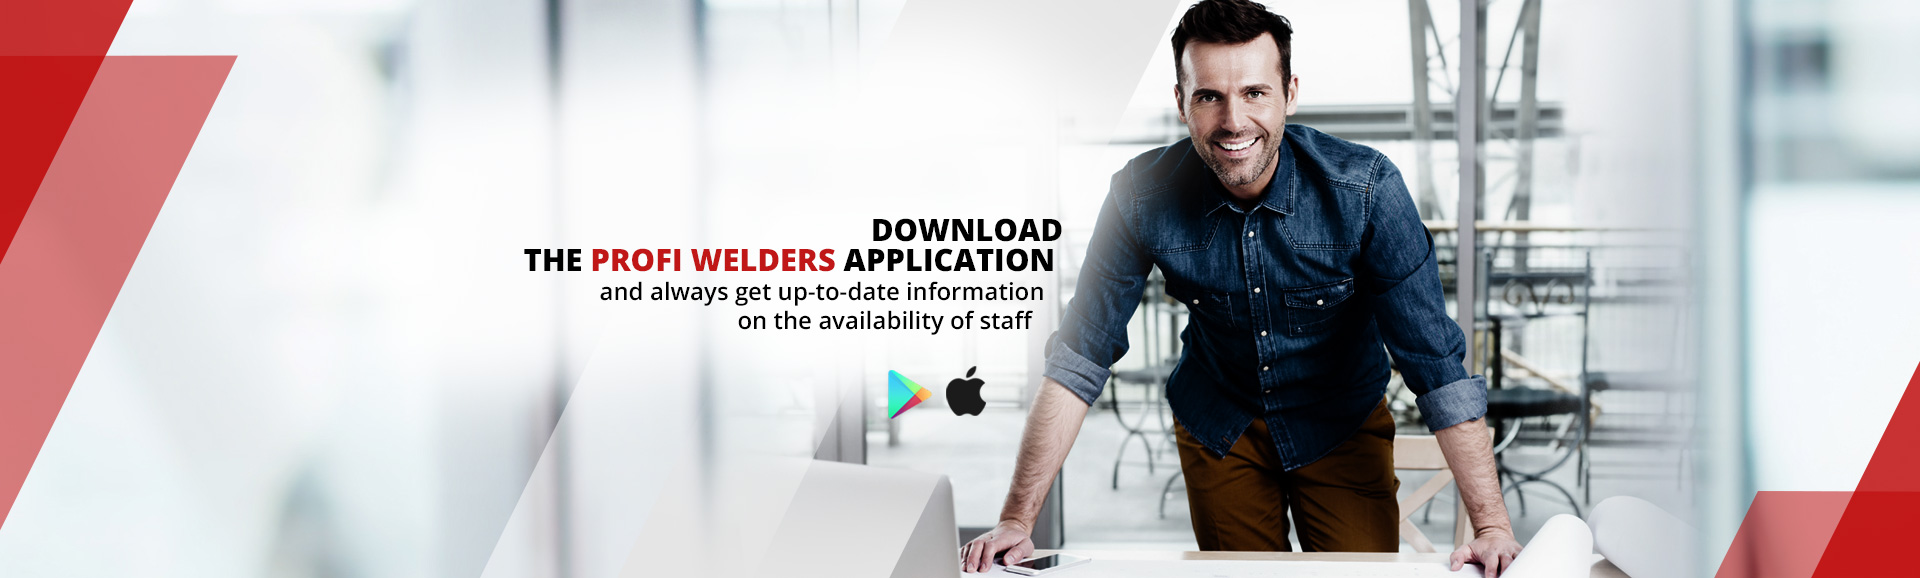 PROFIWELDERS APPLICATION